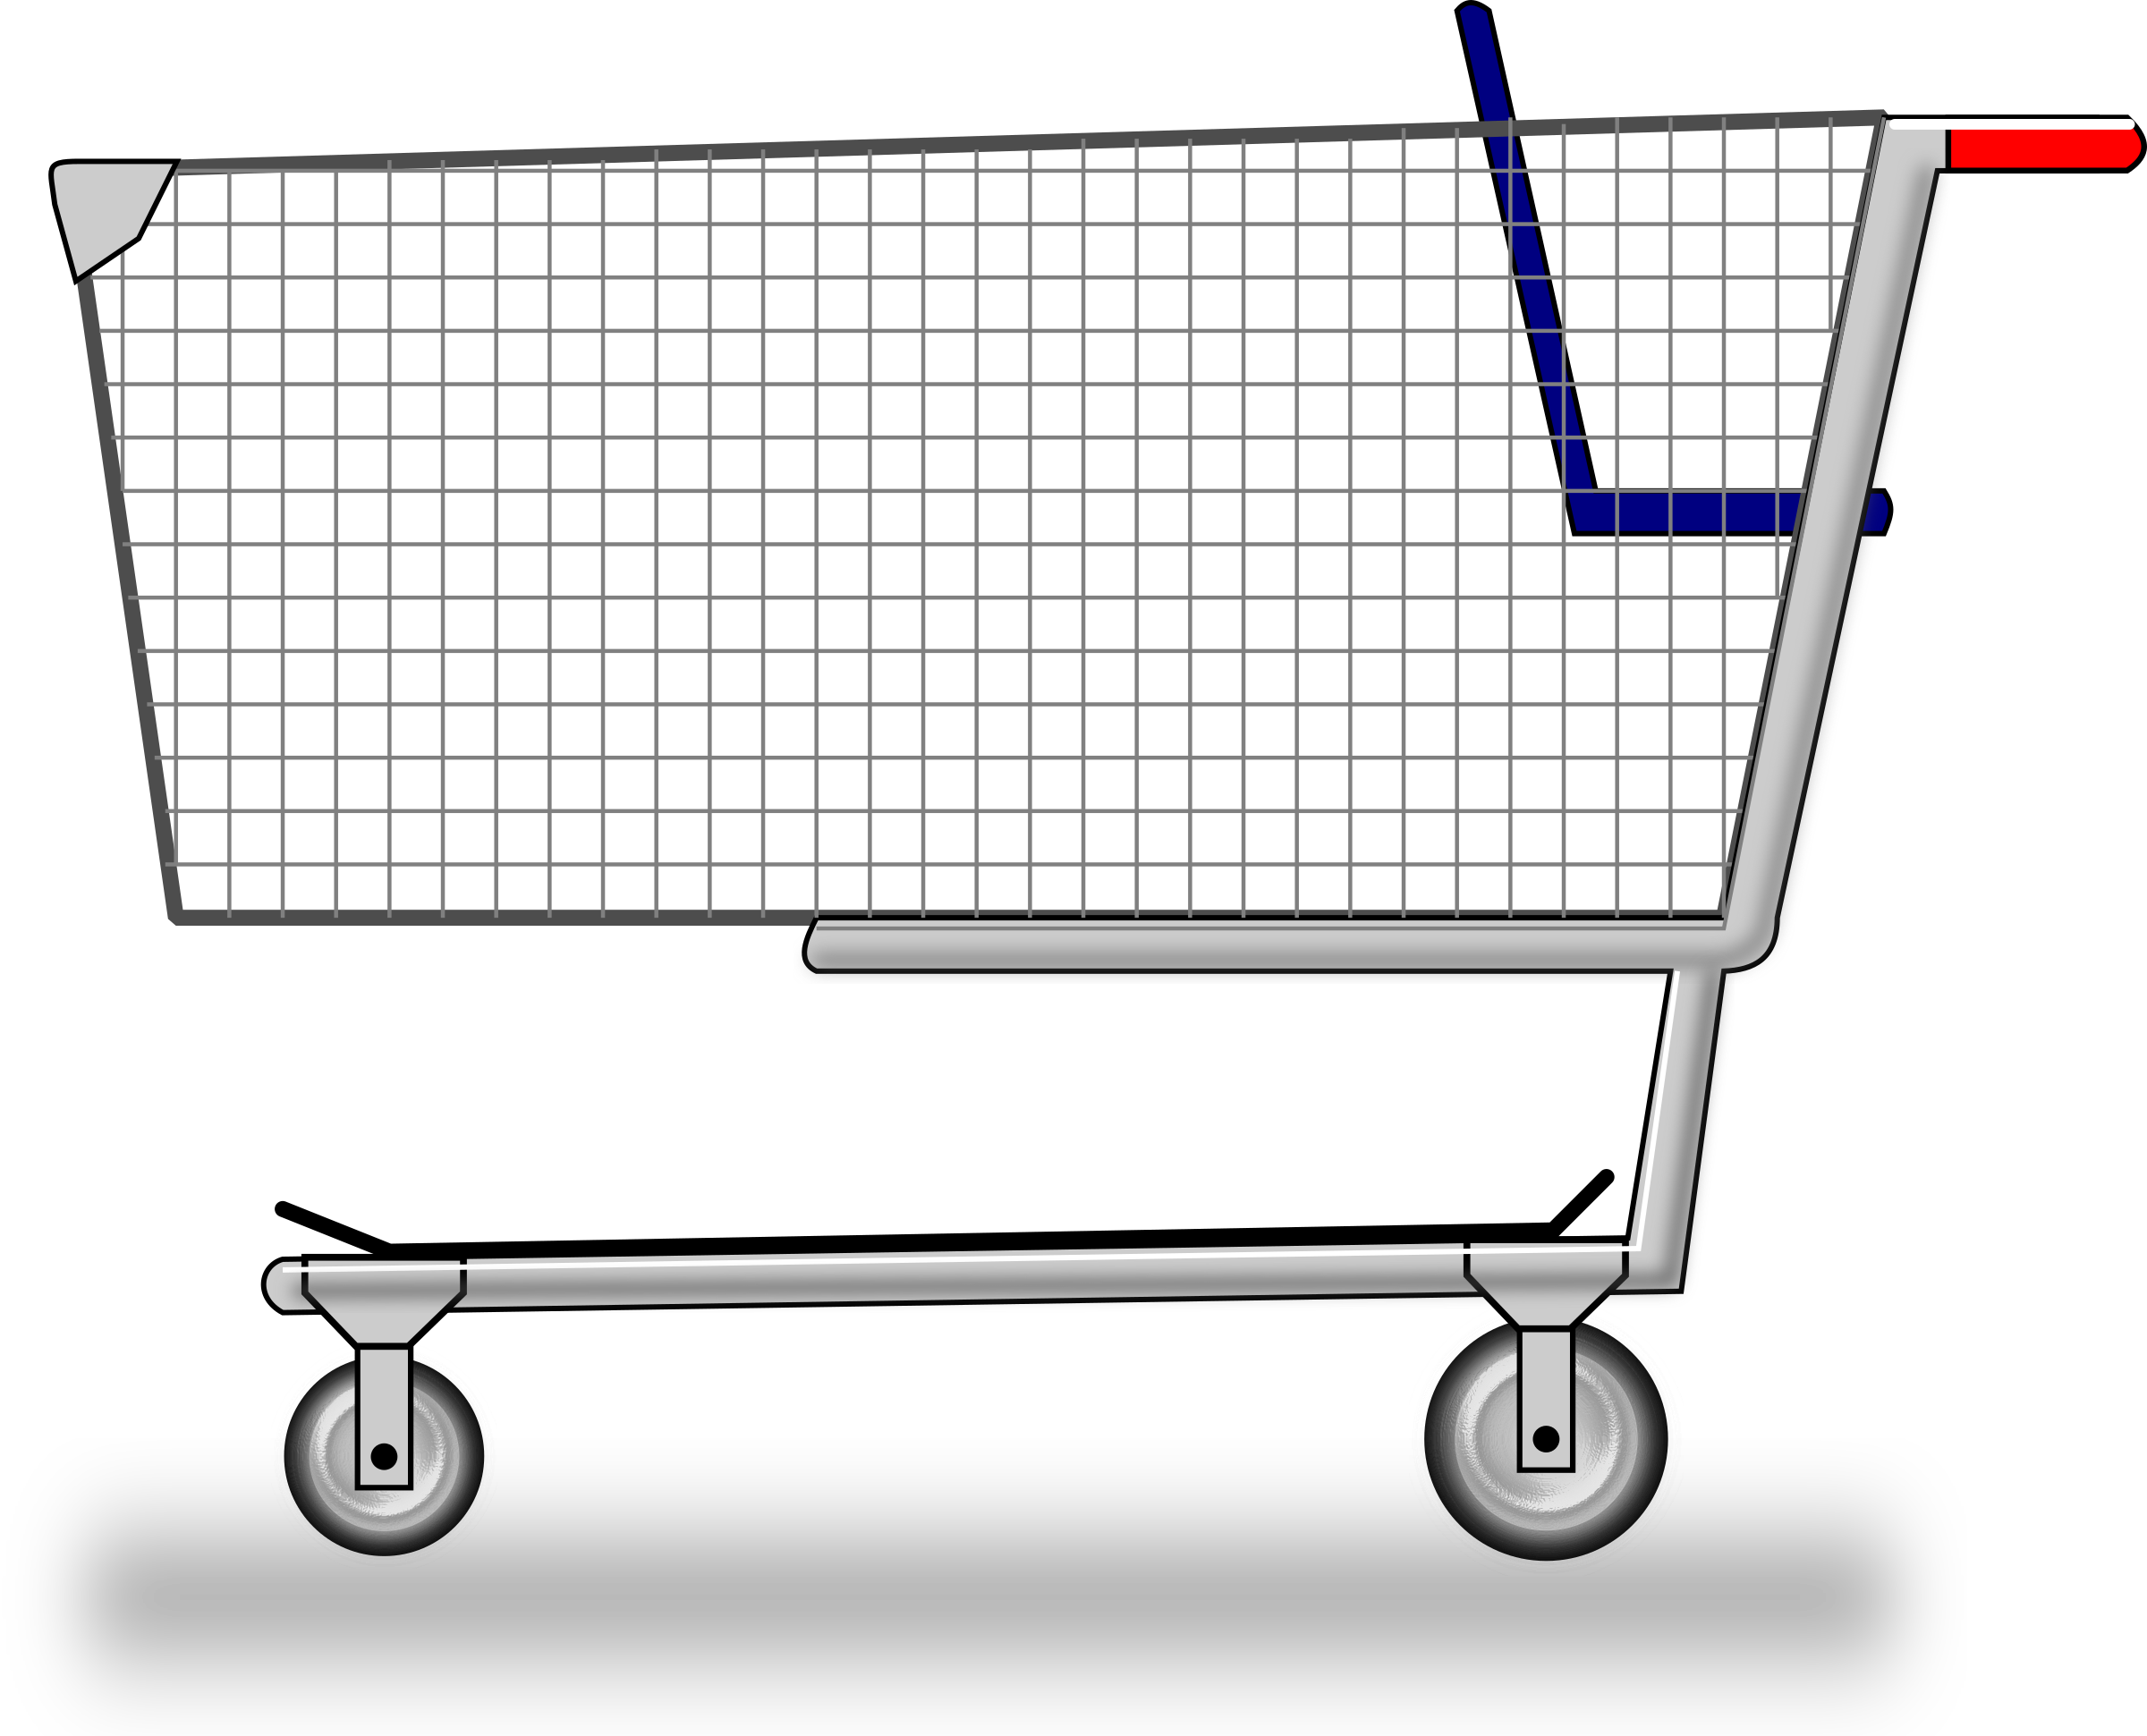 clipart download Supermarket clipart shopping trolly. Cart big image png